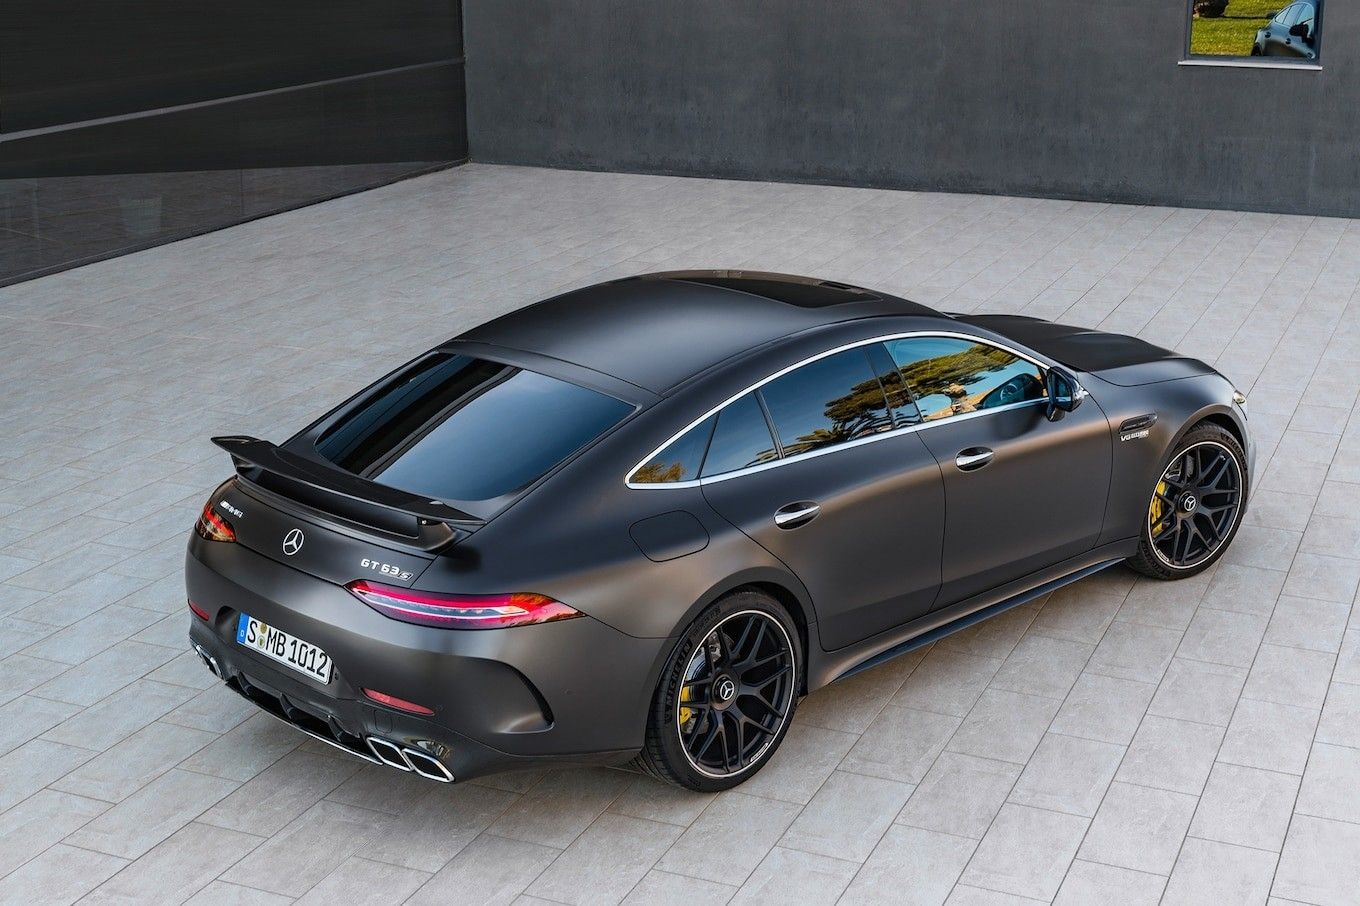 2019 Mercedes Benz Amg Gt S Price 2019 Toyota Car